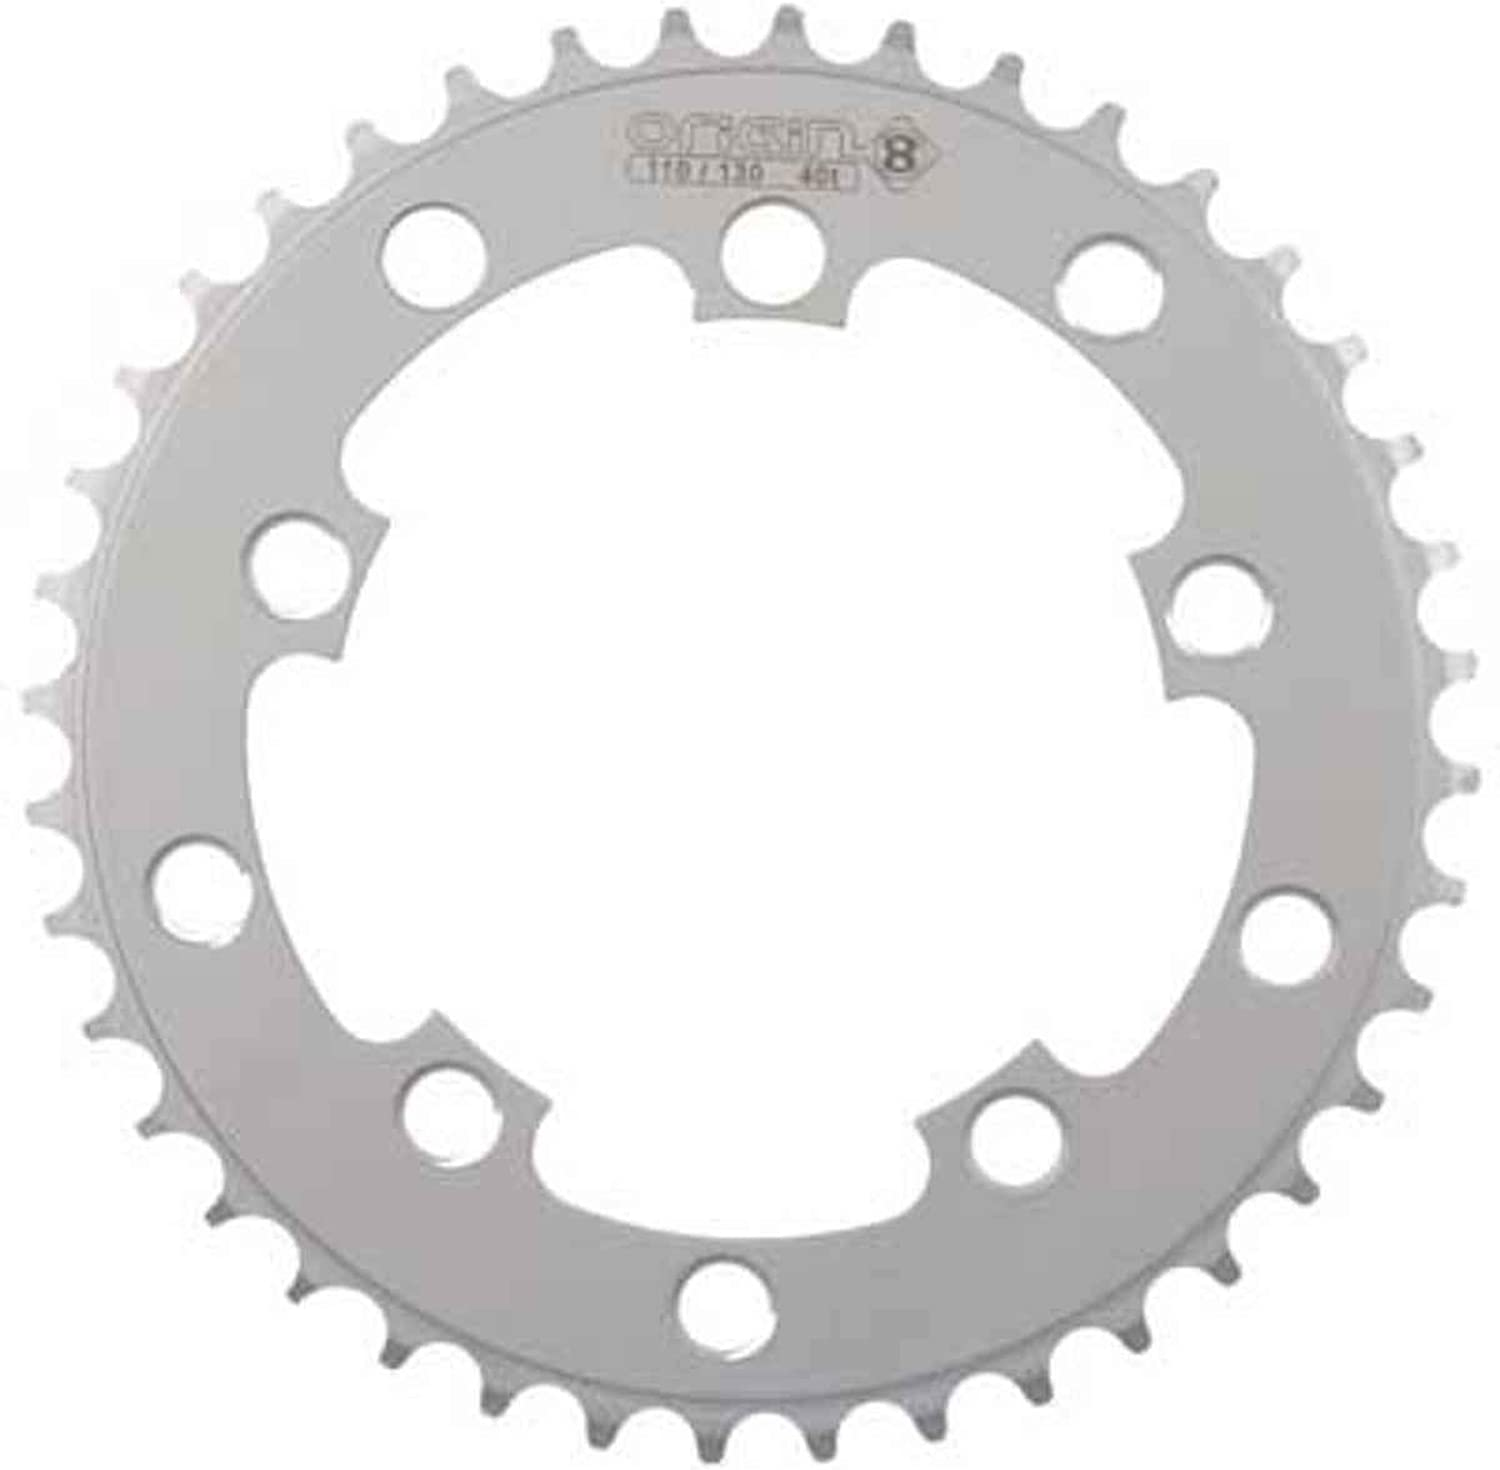 Origin8 BMX   Singlespeed   Fixie Chainring, 40t, 110 130 BCD, 3 32, Silver